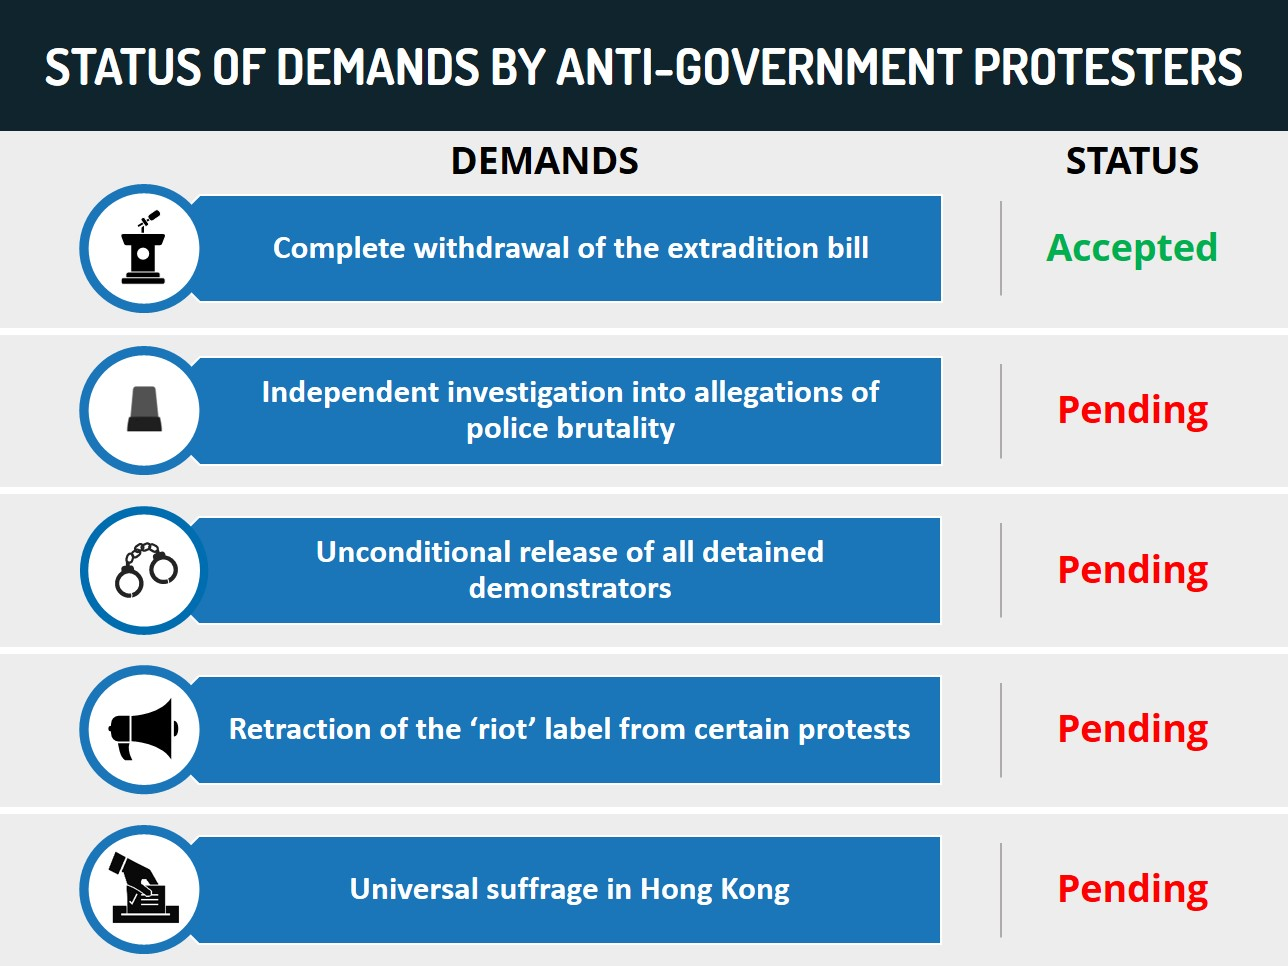 Status if Demands by Anti-government Protesters